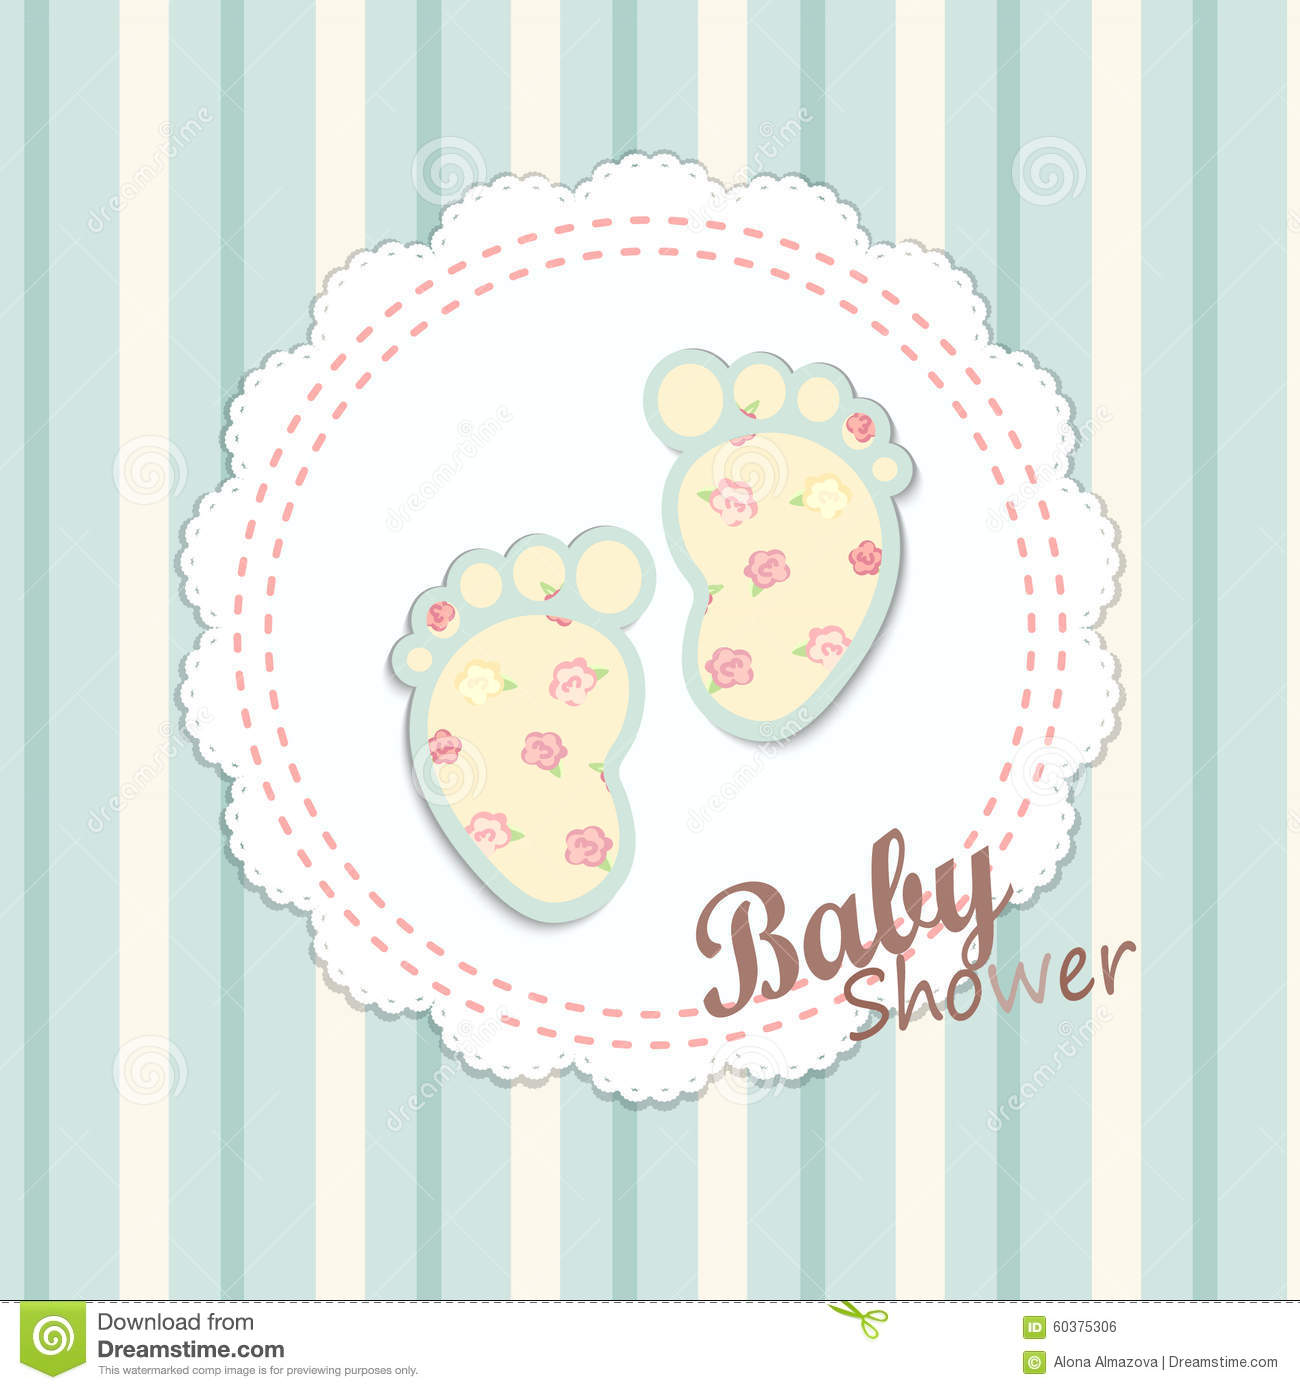 brunito shower card baby - photo #30